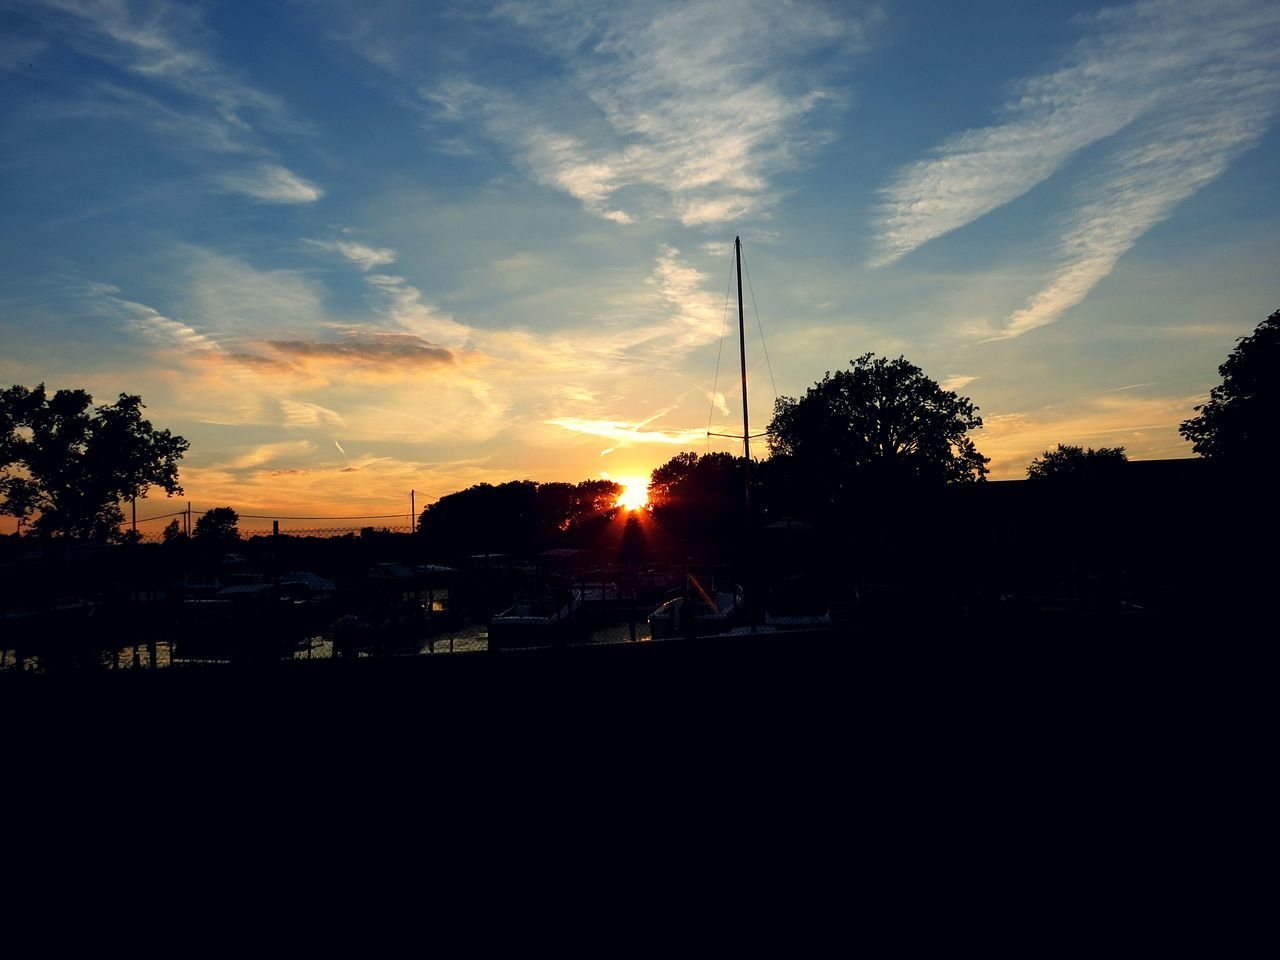 sunset, silhouette, sky, tree, cloud - sky, sunbeam, nature, sun, beauty in nature, no people, scenics, outdoors, tranquility, sunlight, landscape, architecture, day